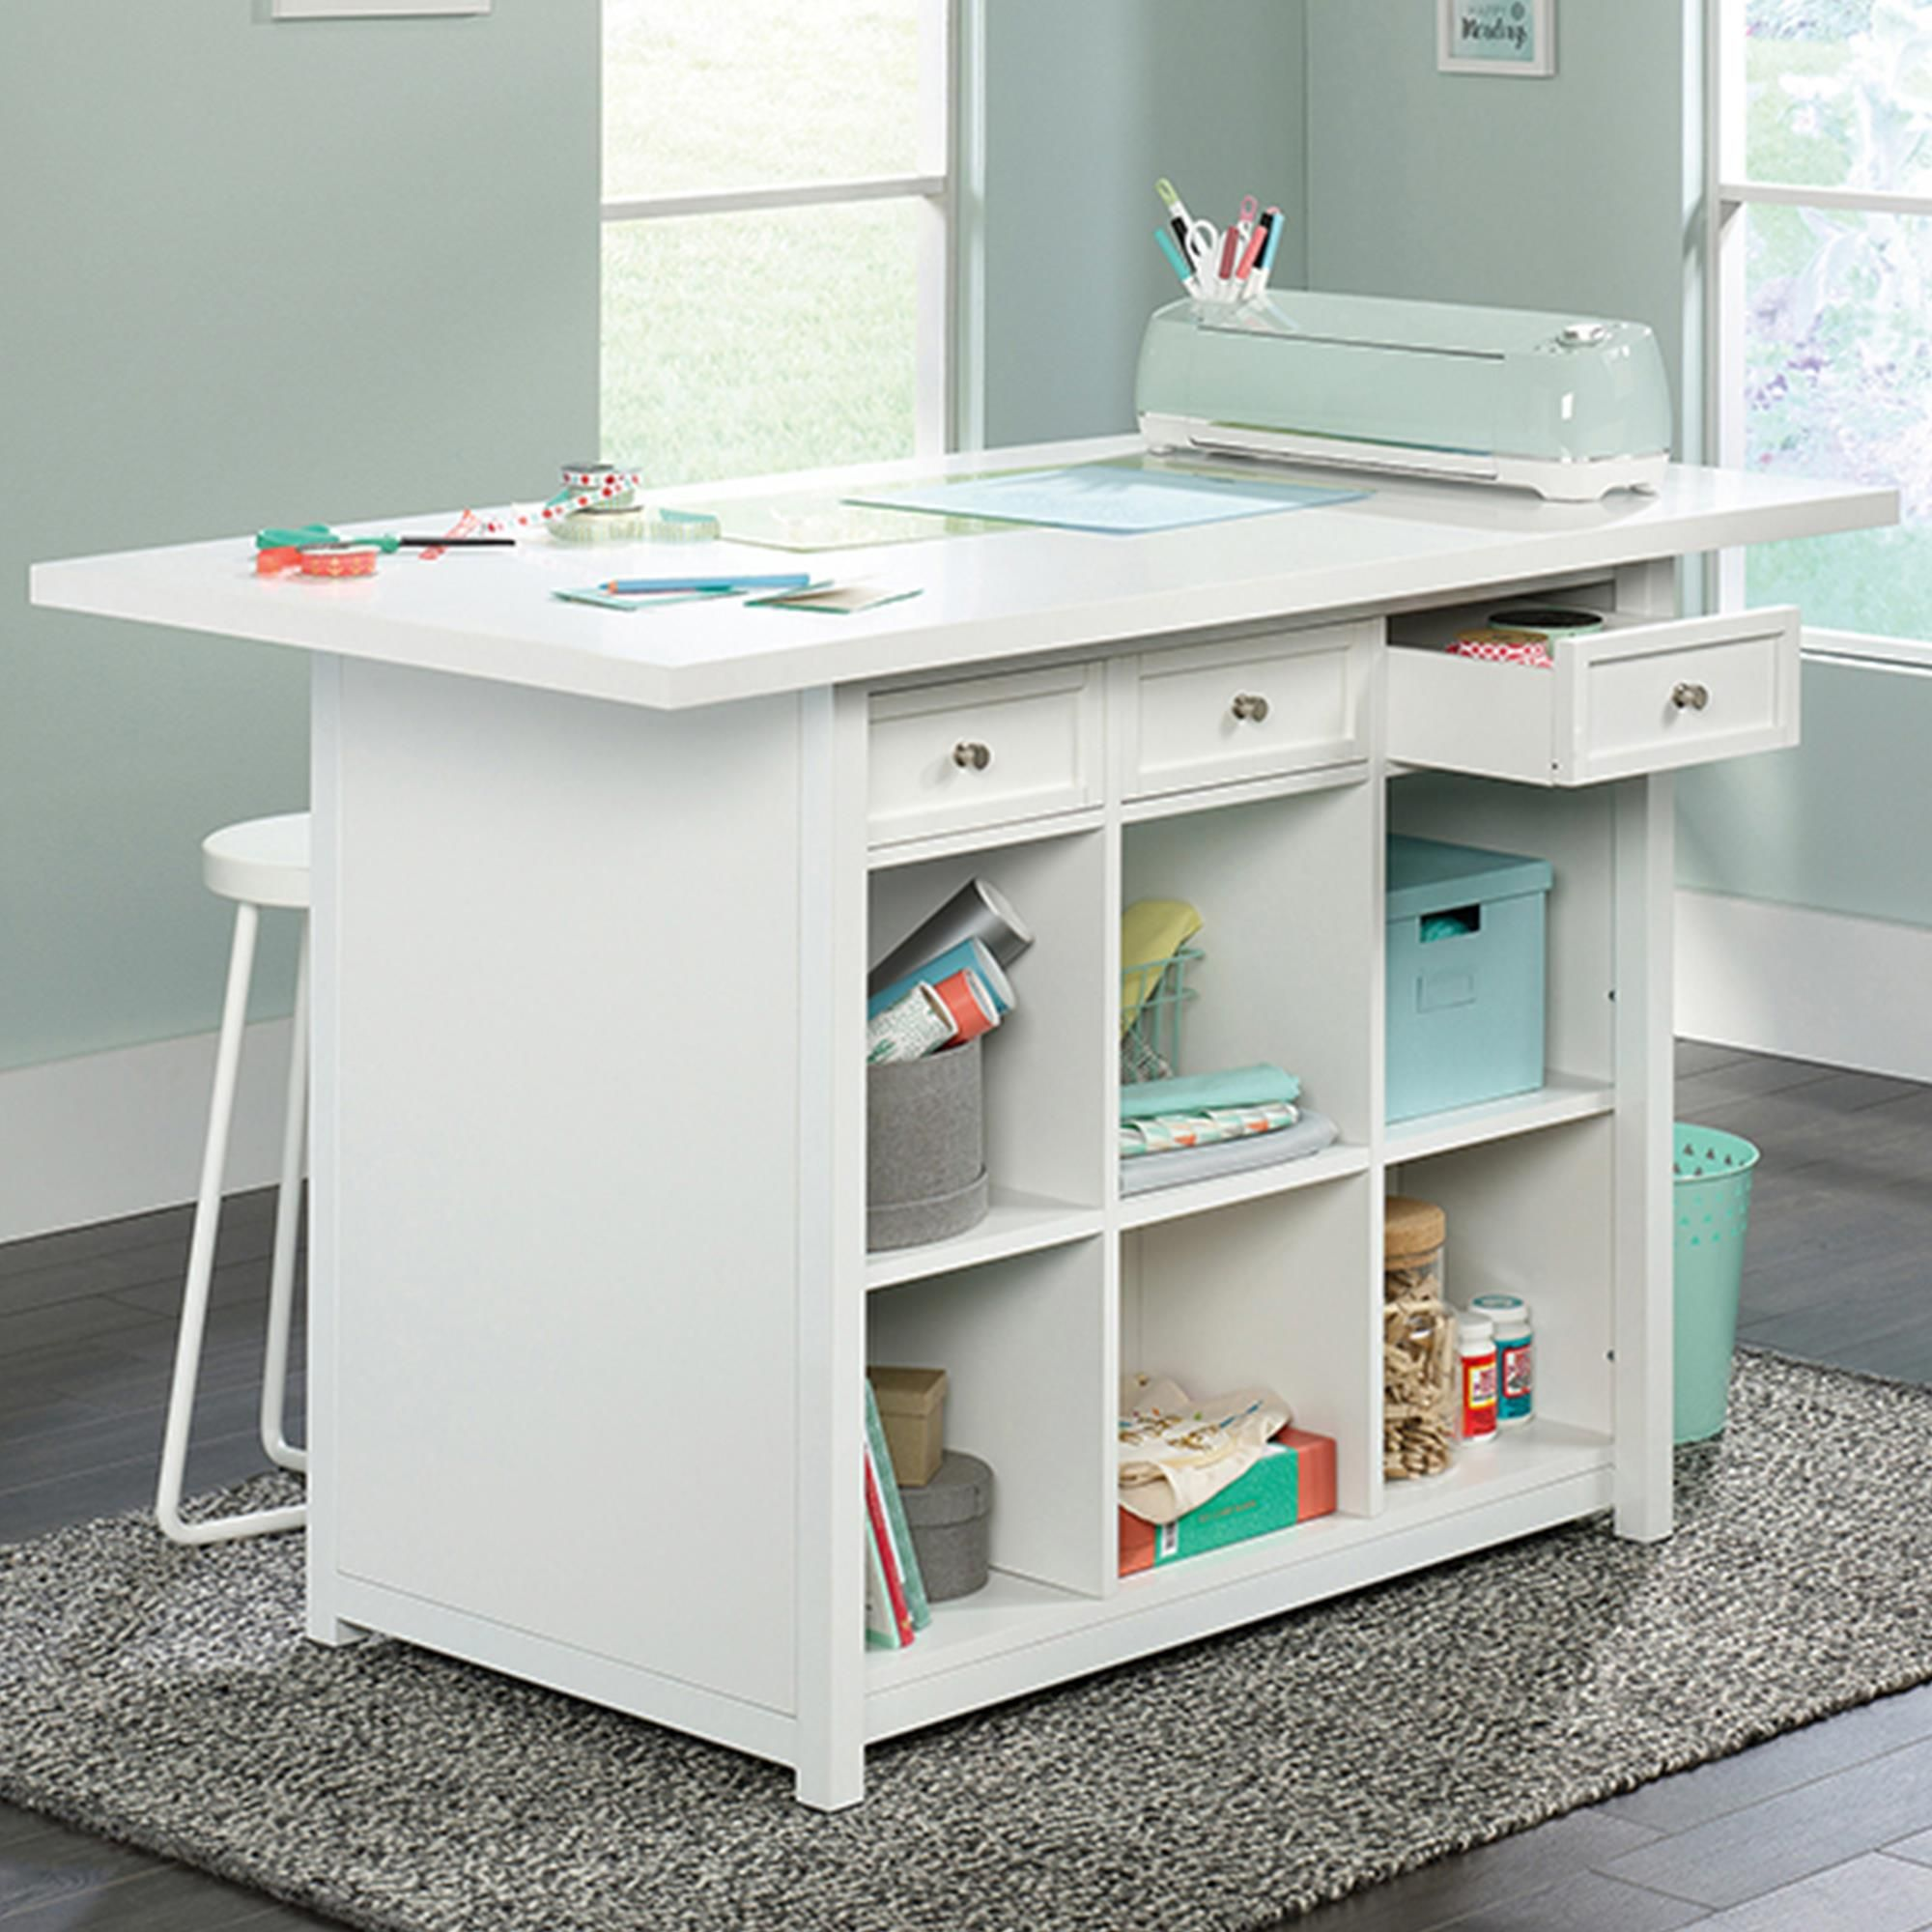 Sauder Craft Pro Work Table In Laminate White Nfm In 2021 Craft Room Tables Craft Room Design Dream Craft Room